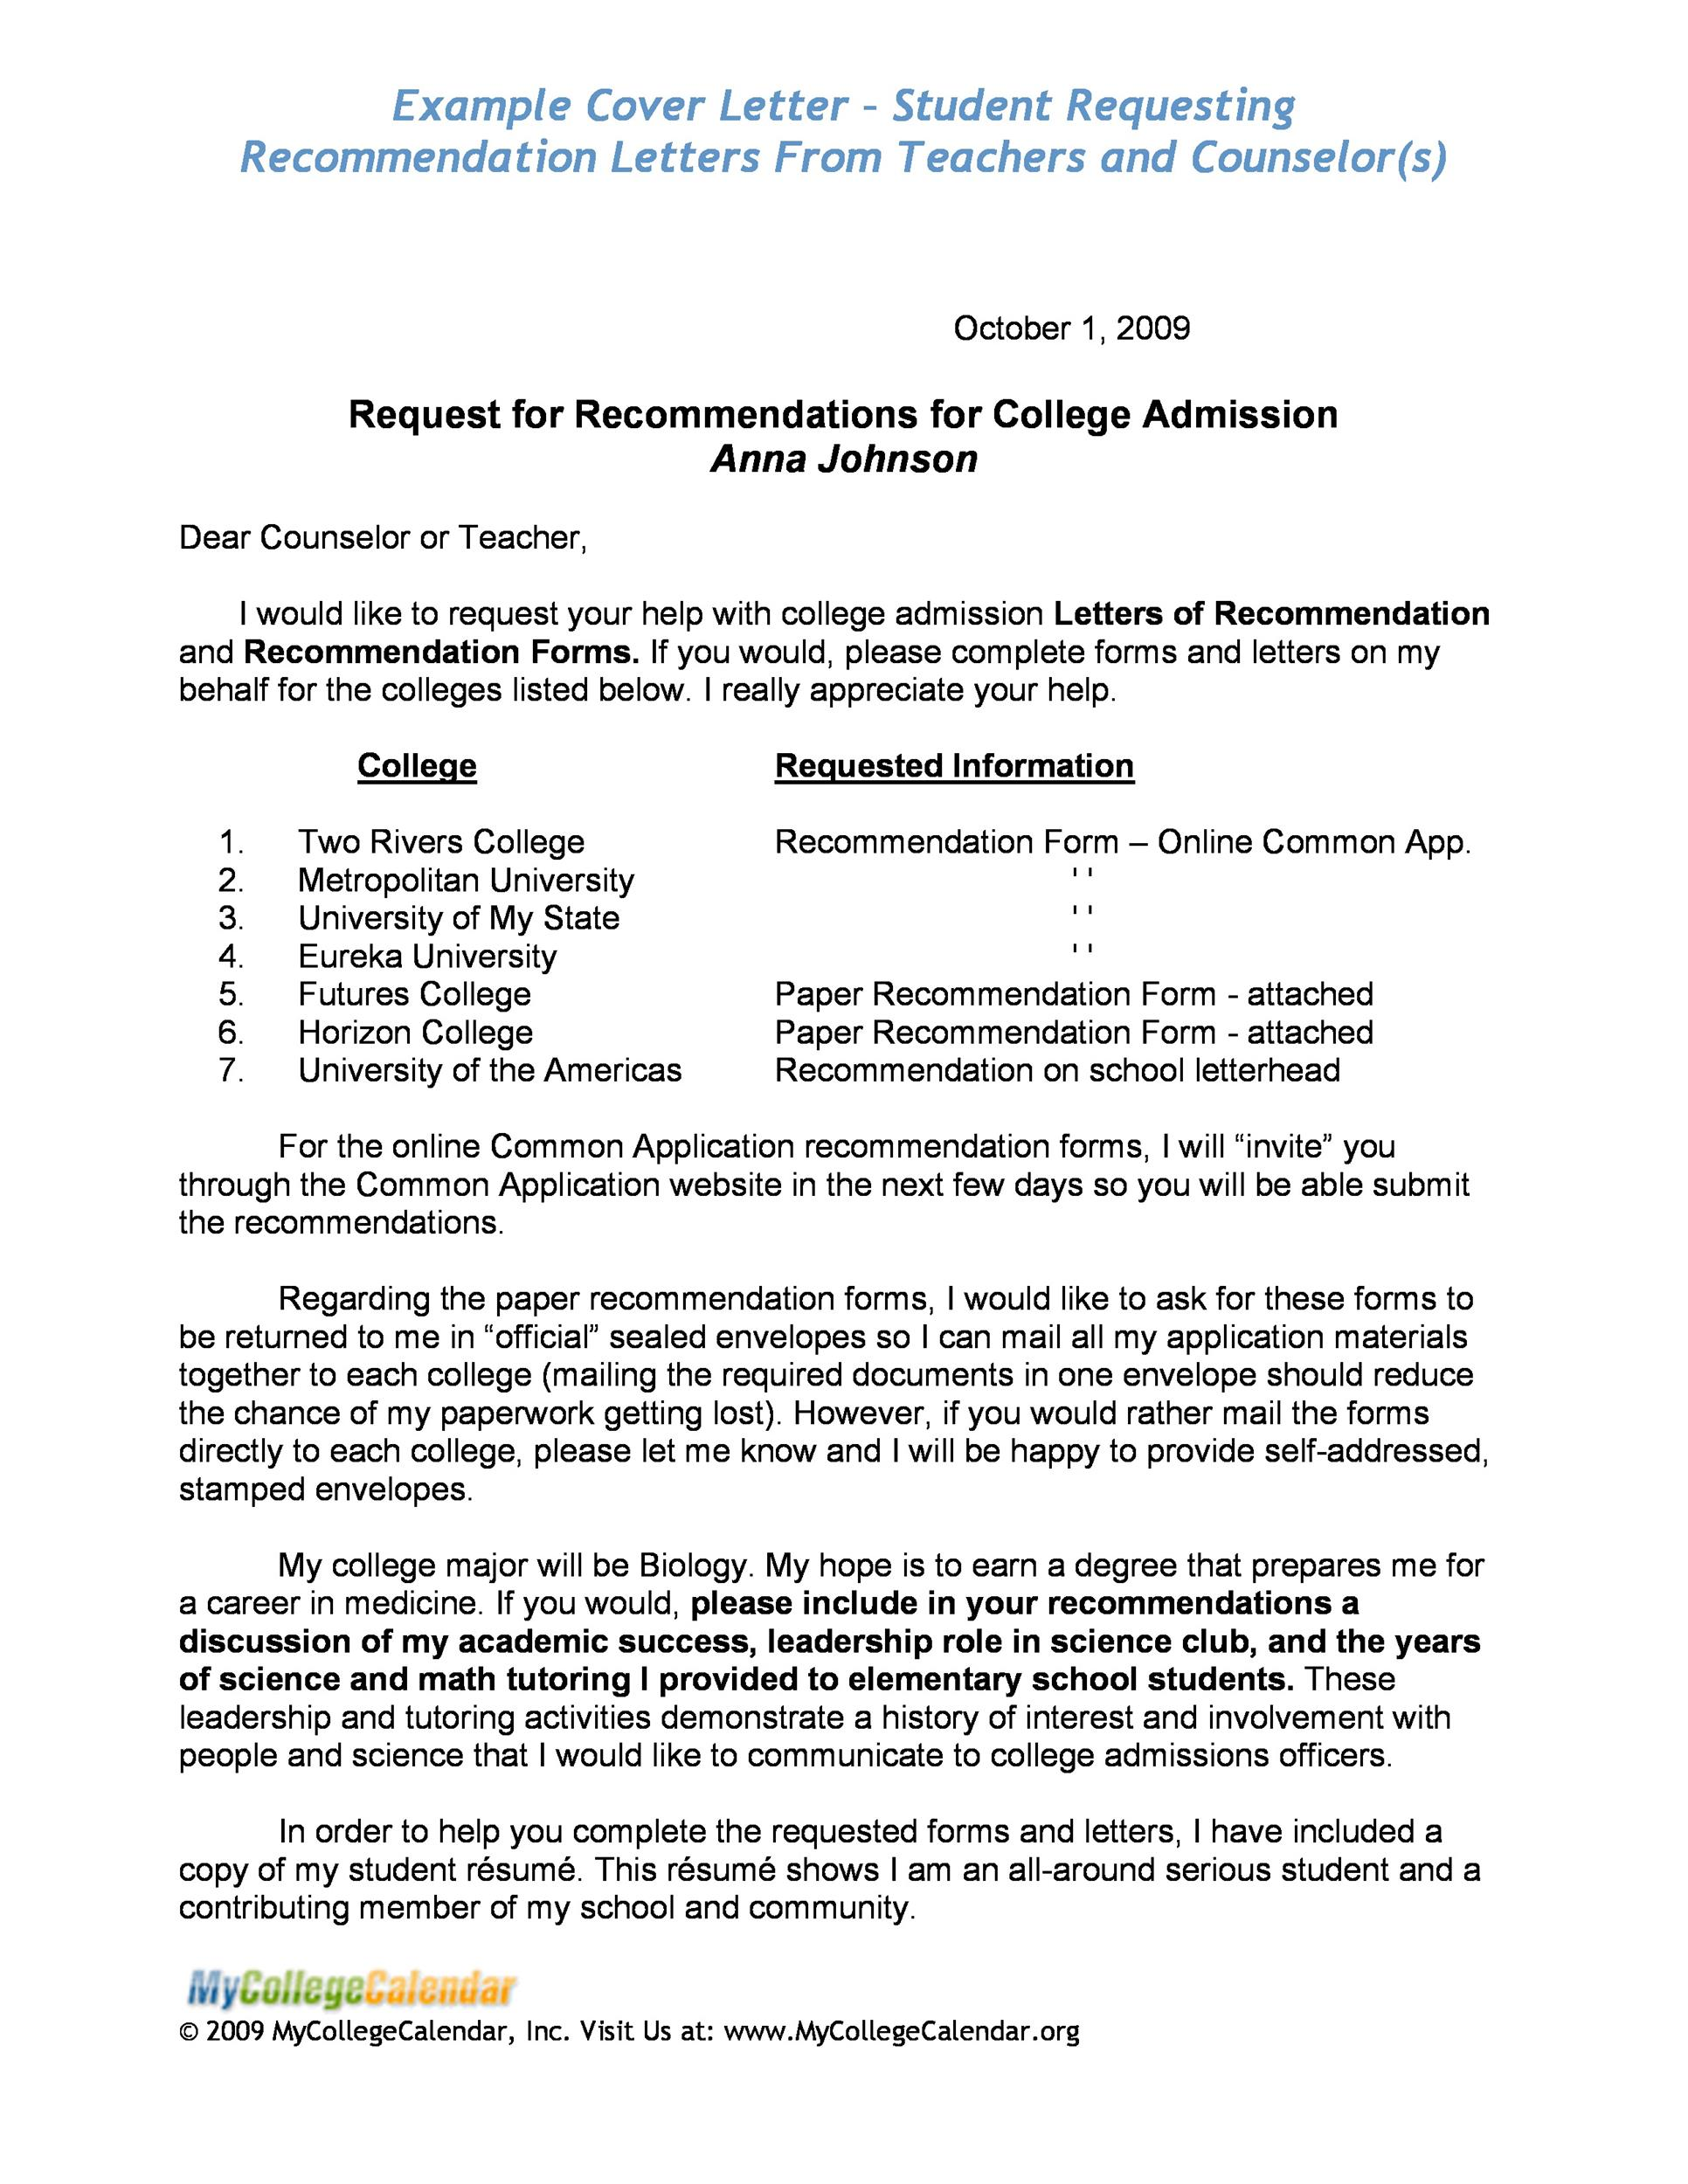 free letter of recommendation templates samples resume reference examples health care Resume Resume Reference Letter Examples